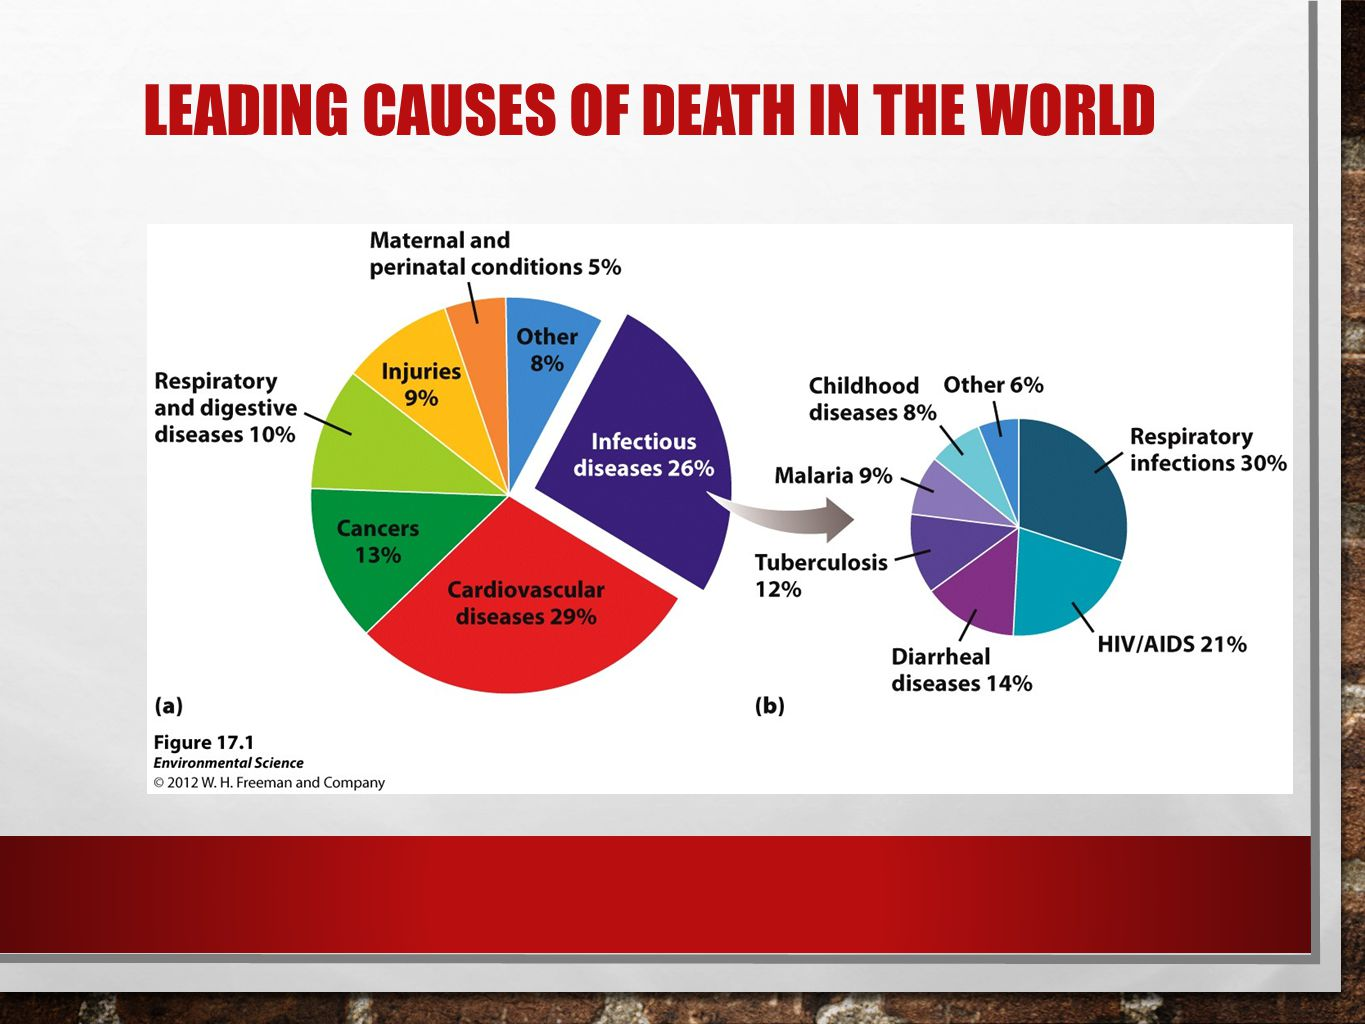 LEADING CAUSES OF DEATH IN THE WORLD